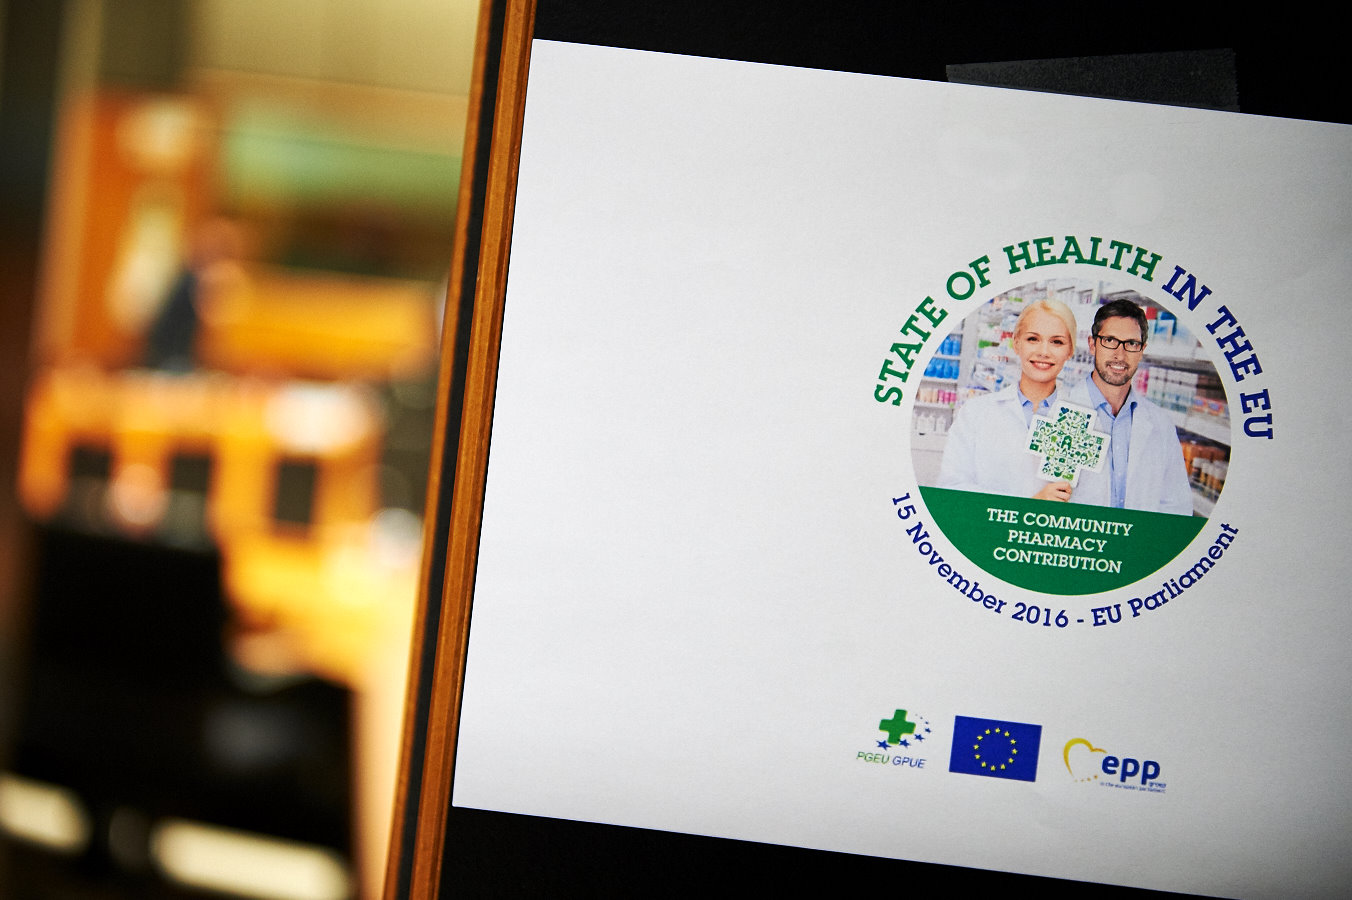 PGEU Campaign- State of Health in the EU